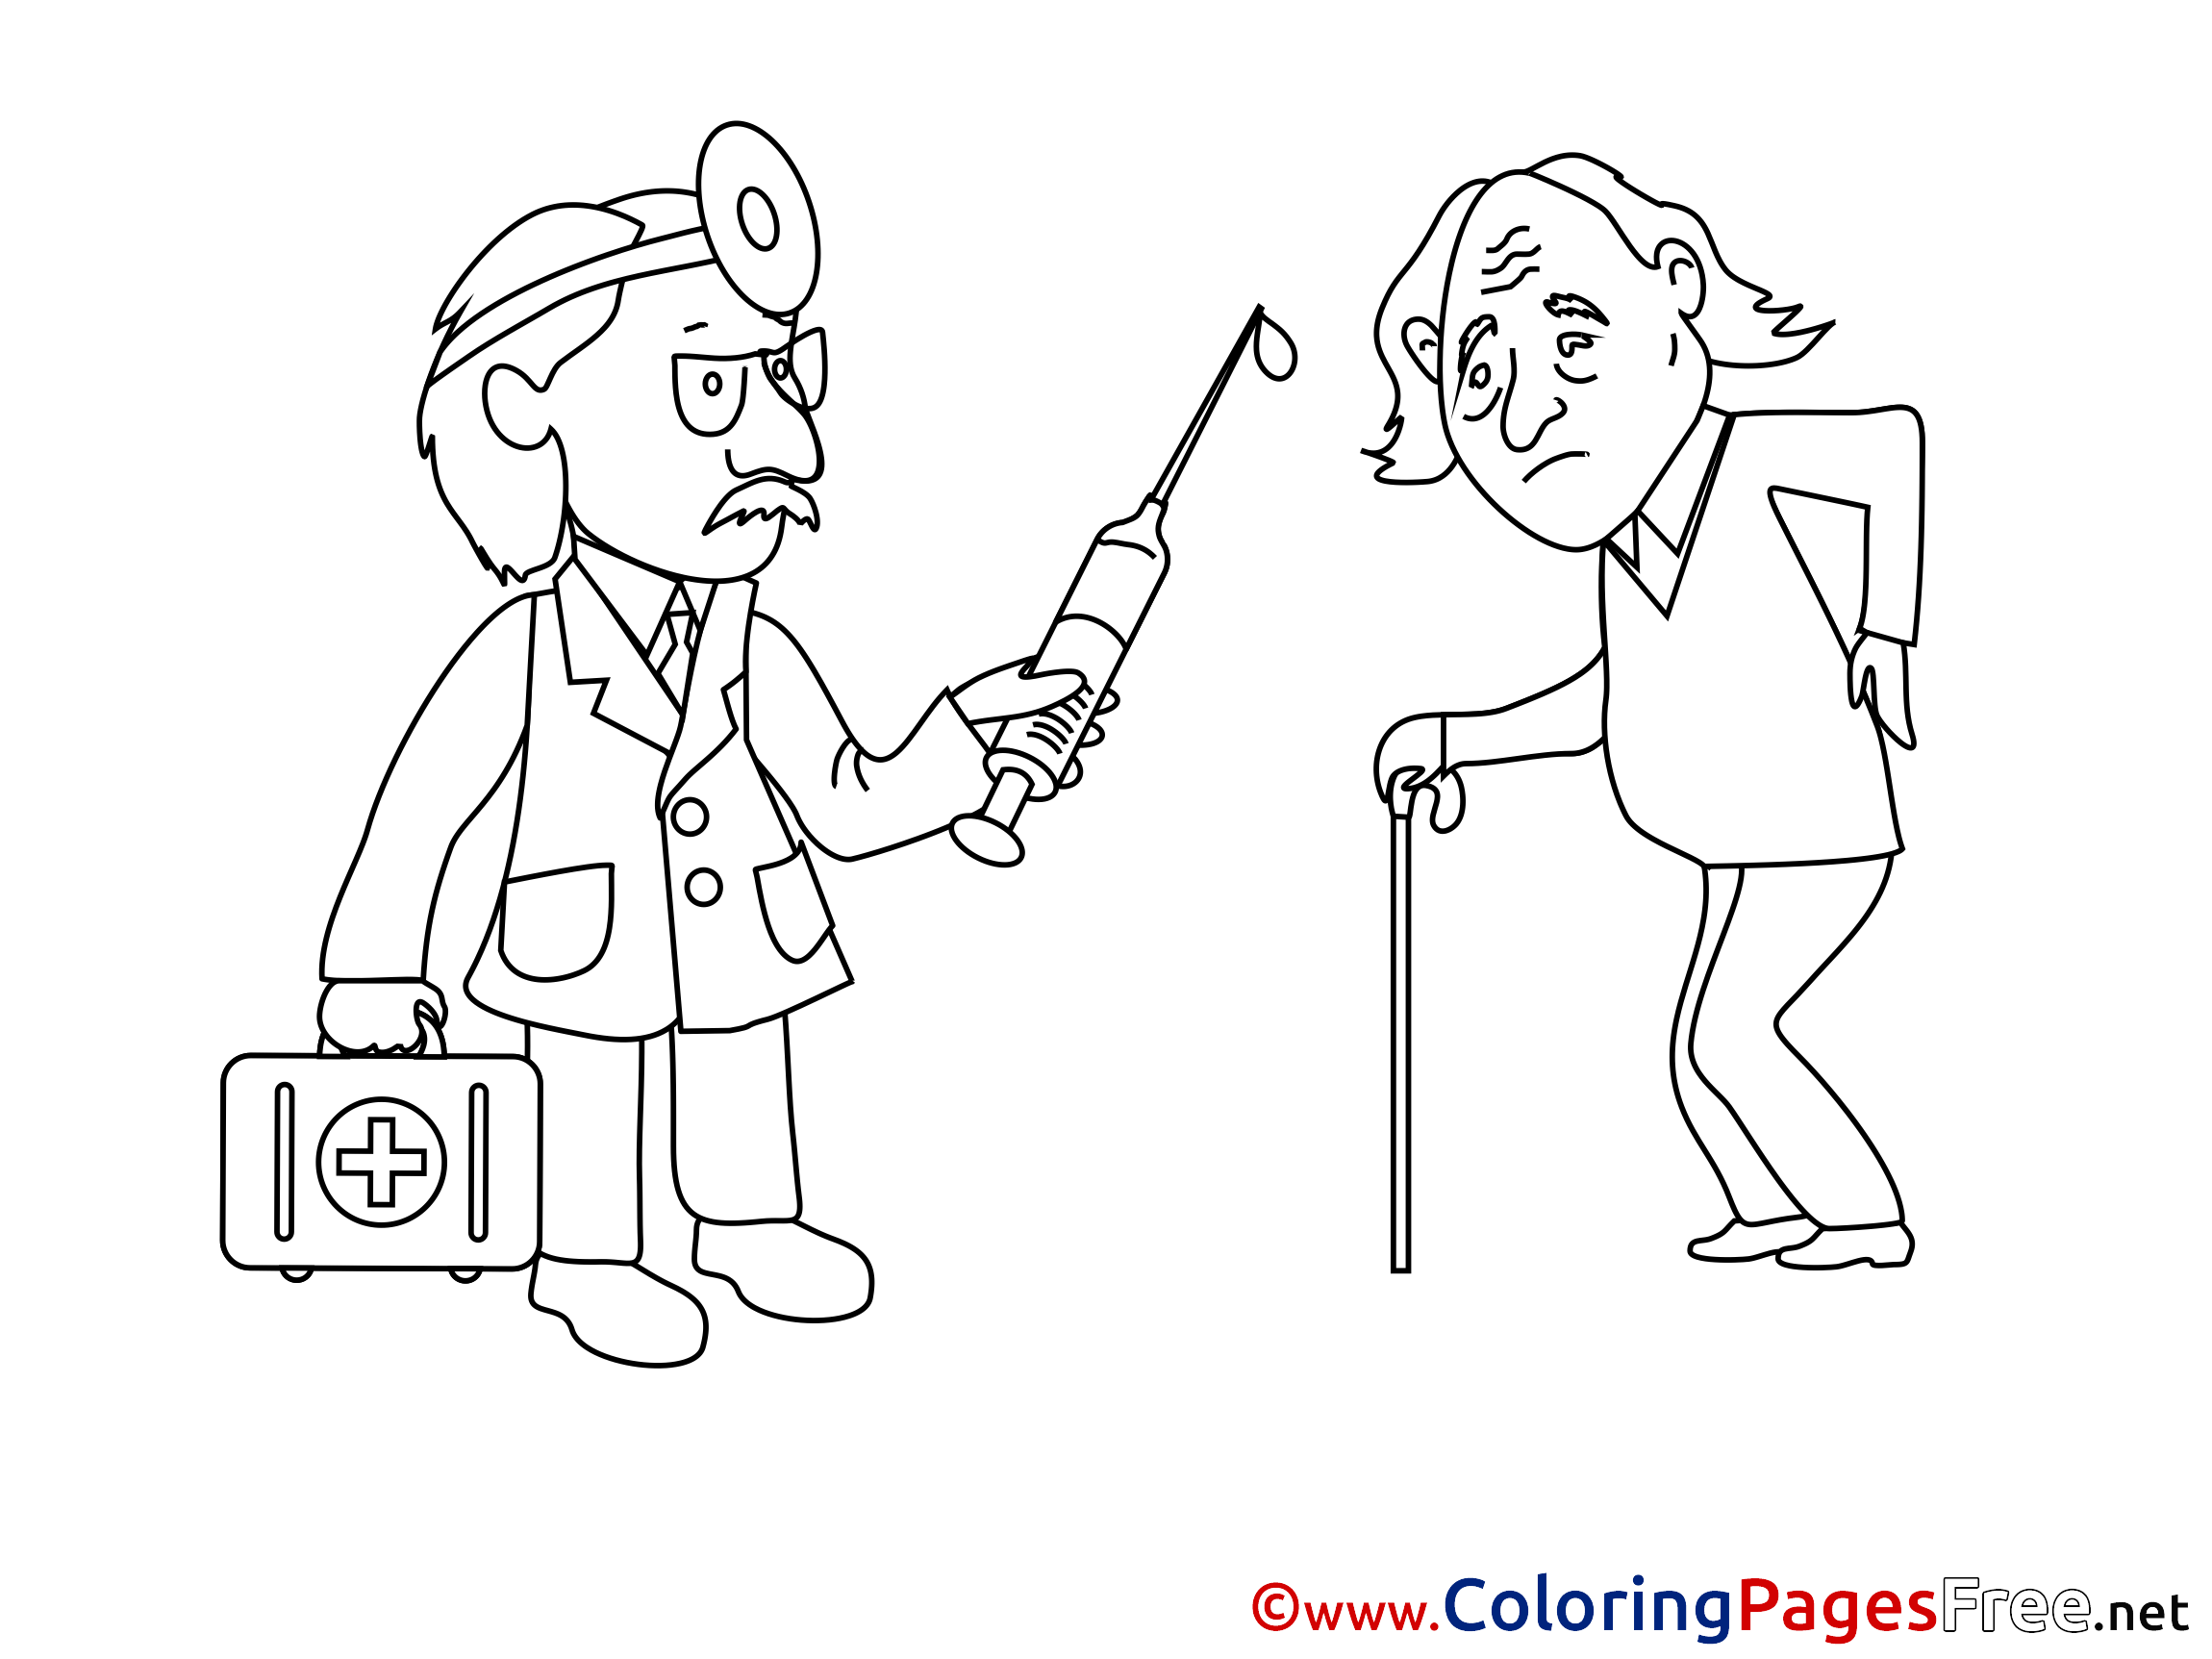 Printable Veterinarian Coloring Pages